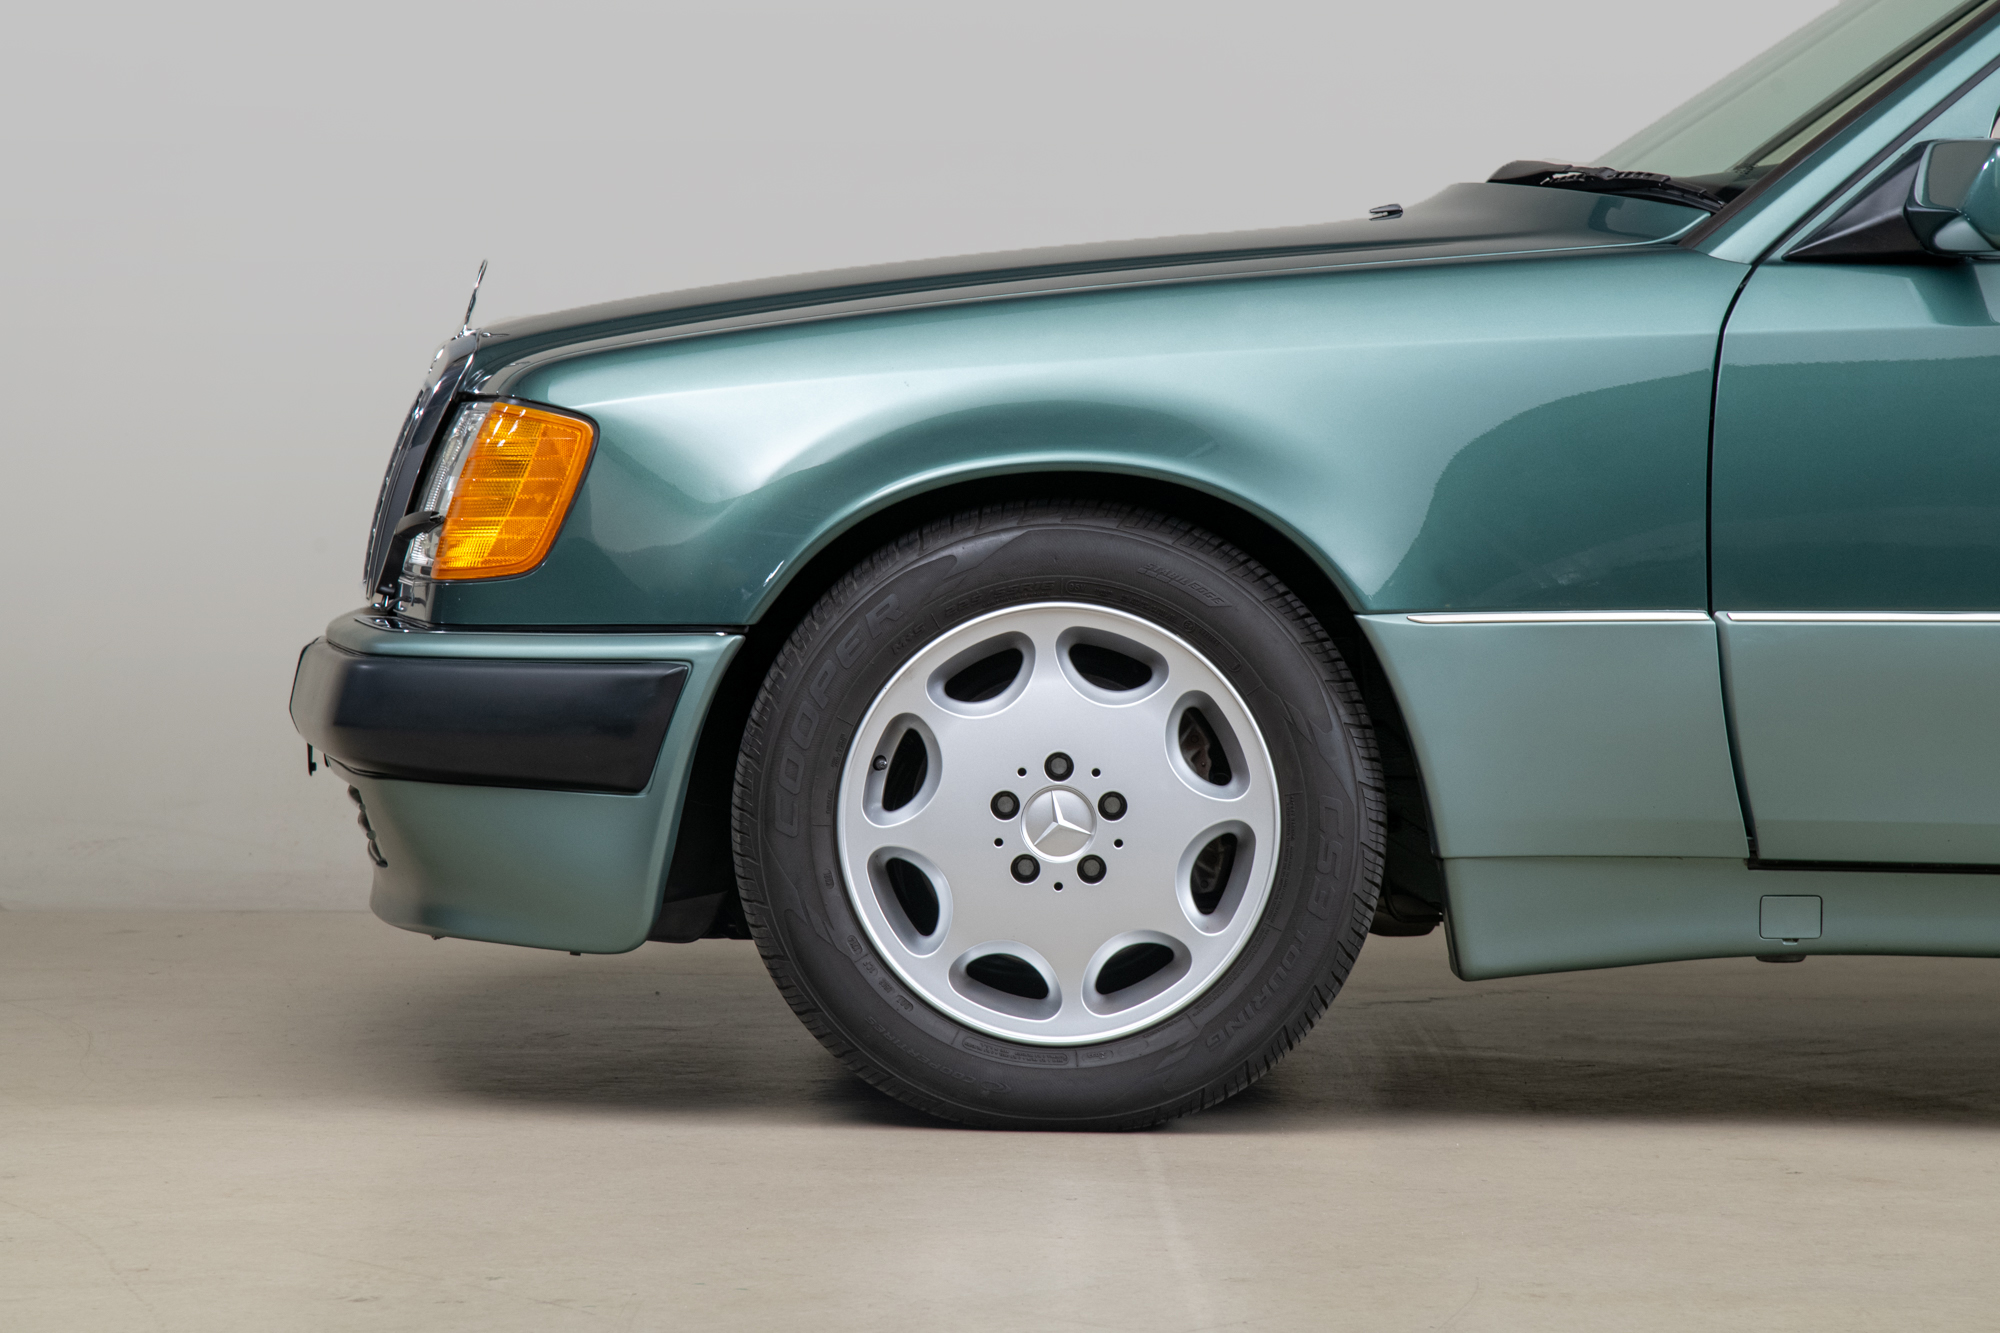 1992 Mercedes-Benz 500E , PALM GREEN, VIN WDBEA36E8NB753678, MILEAGE 126738